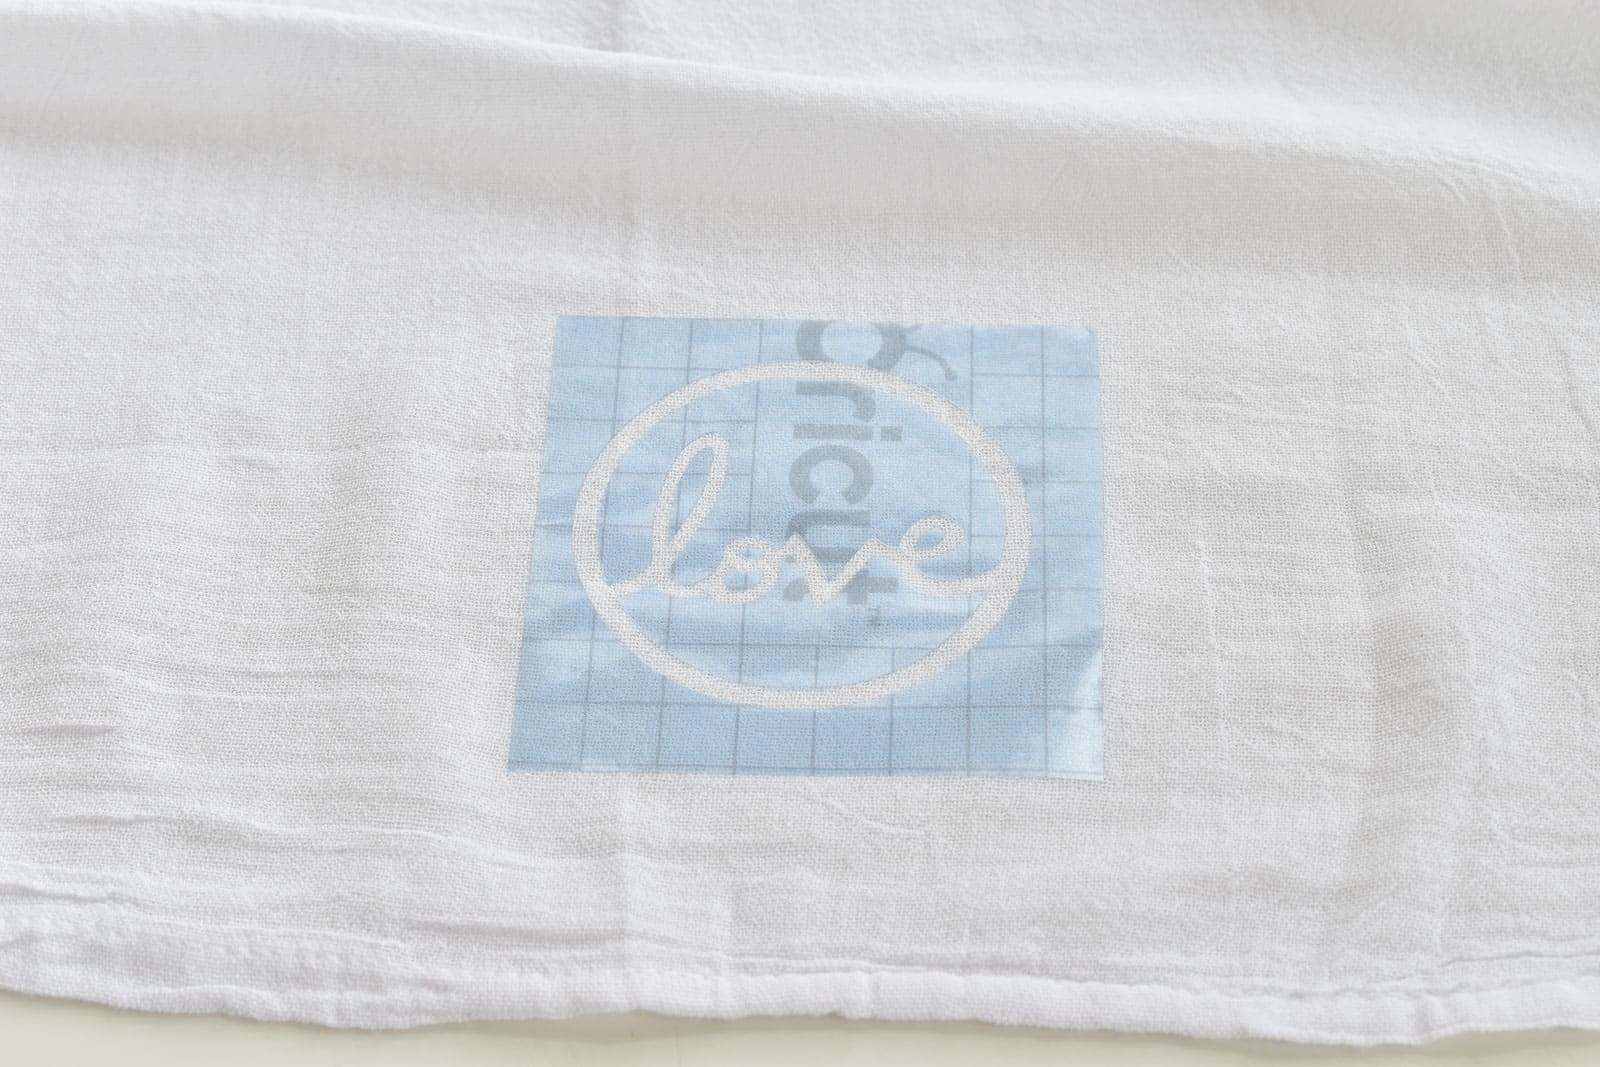 place the stencil onto the towel